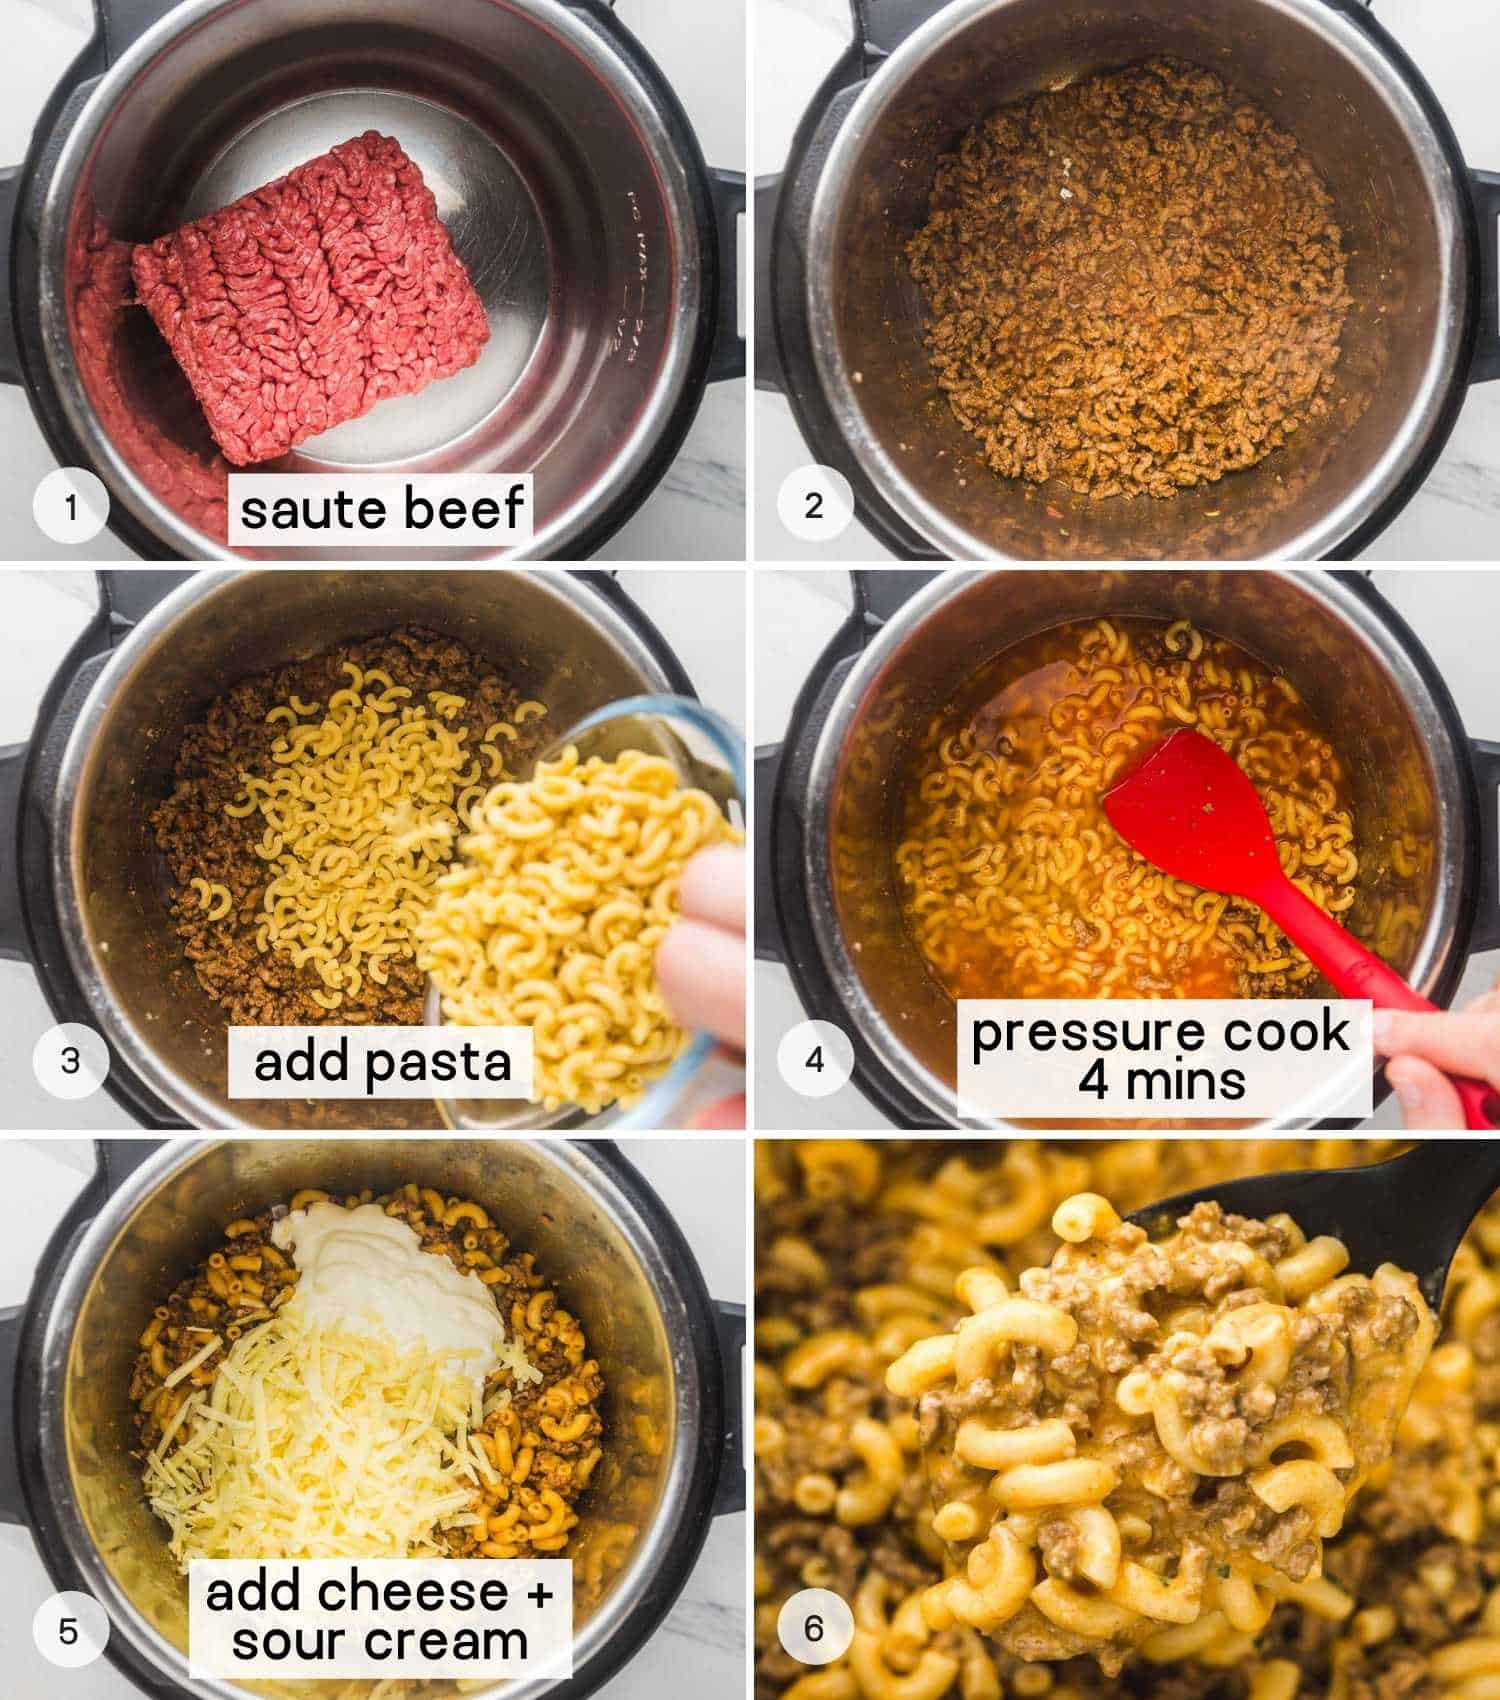 The easy 6 steps showing how to cook this recipe in the Instant Pot, starting from browning the beef, to garnishing it and serving the meal while it's still warm.